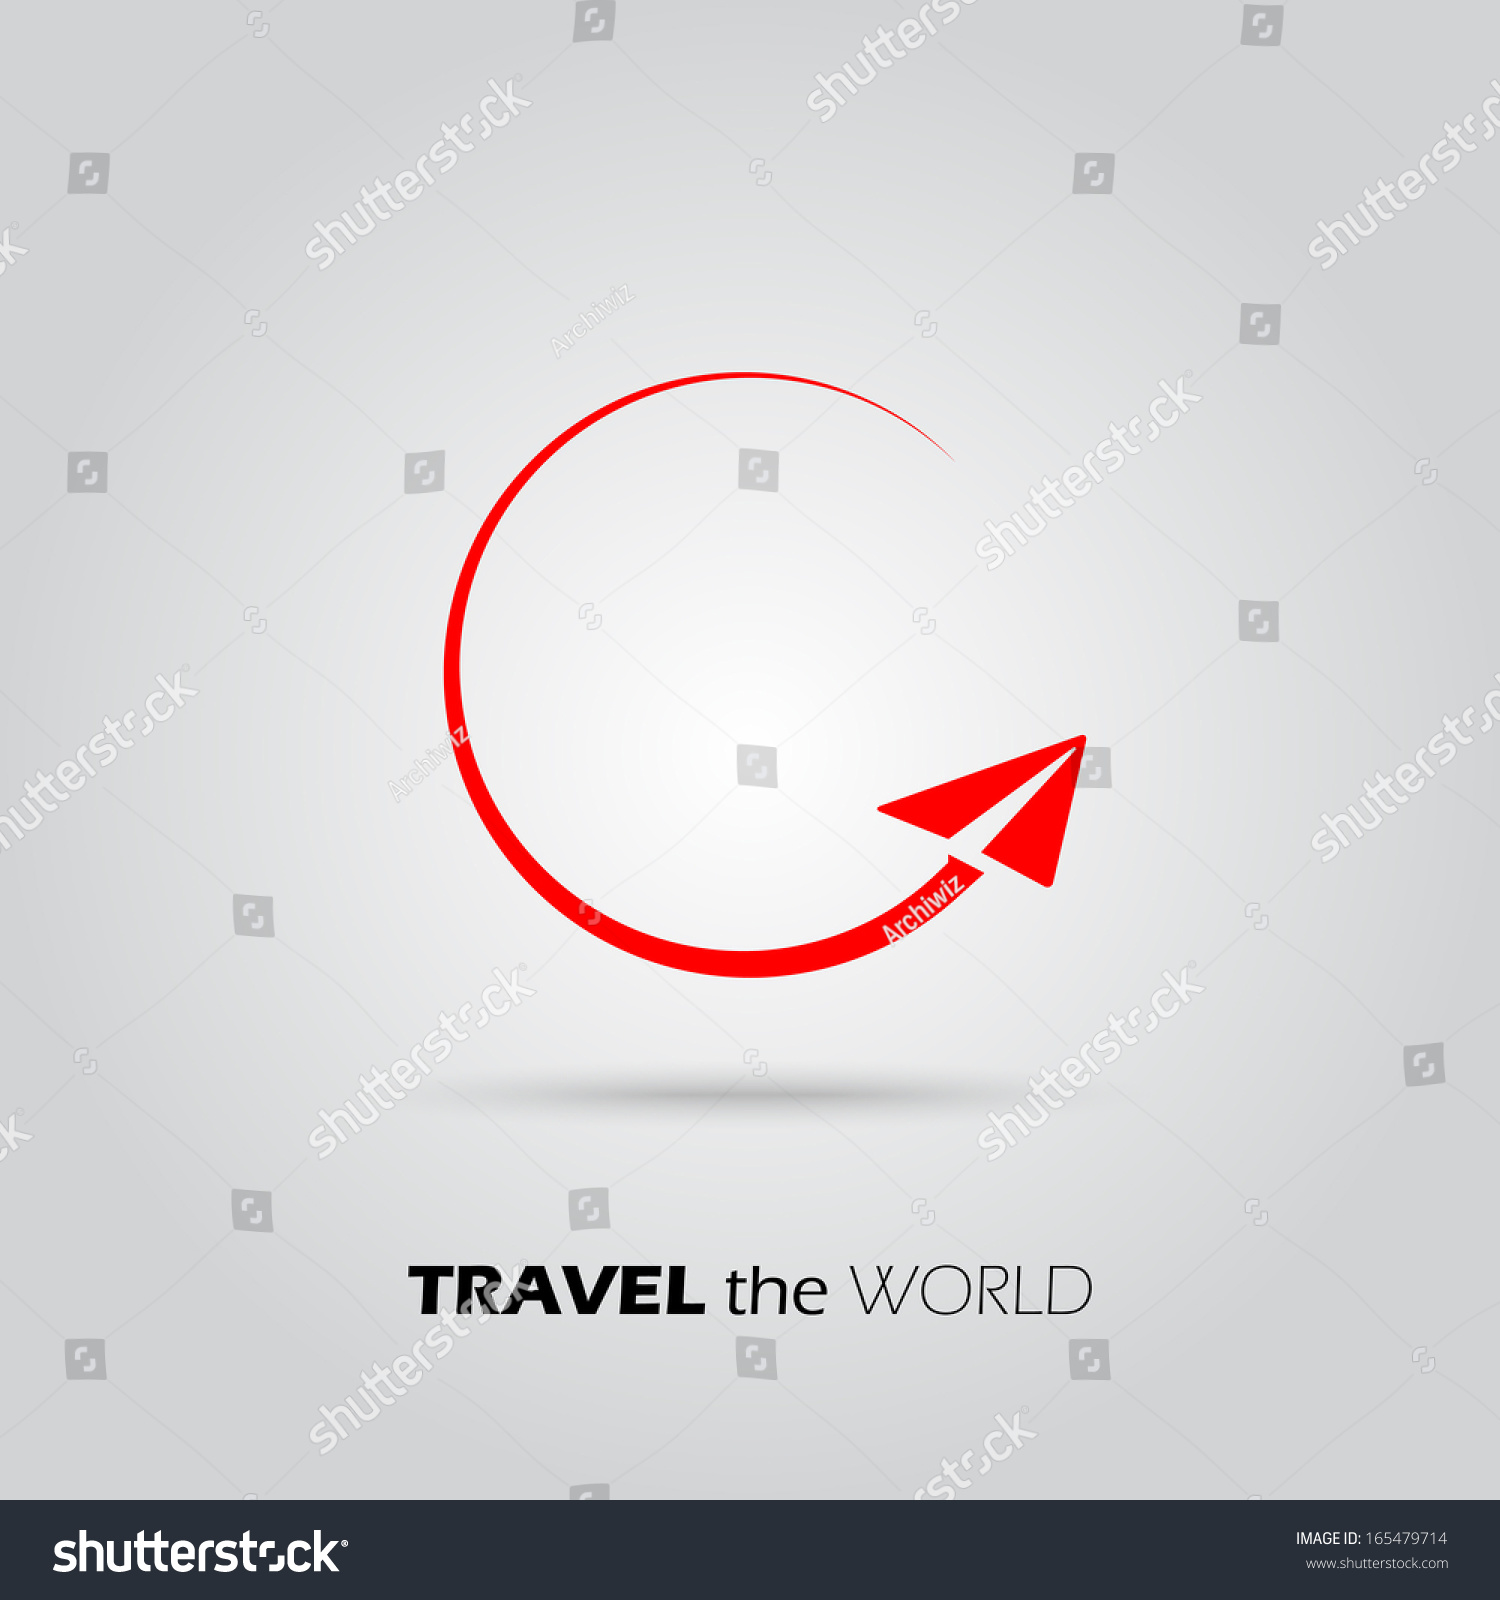 traveling the world essay Essay example on the topic benefits of travelling  in conclusion, i will say that  travelling can improve your understanding of the world and give you wonderful.